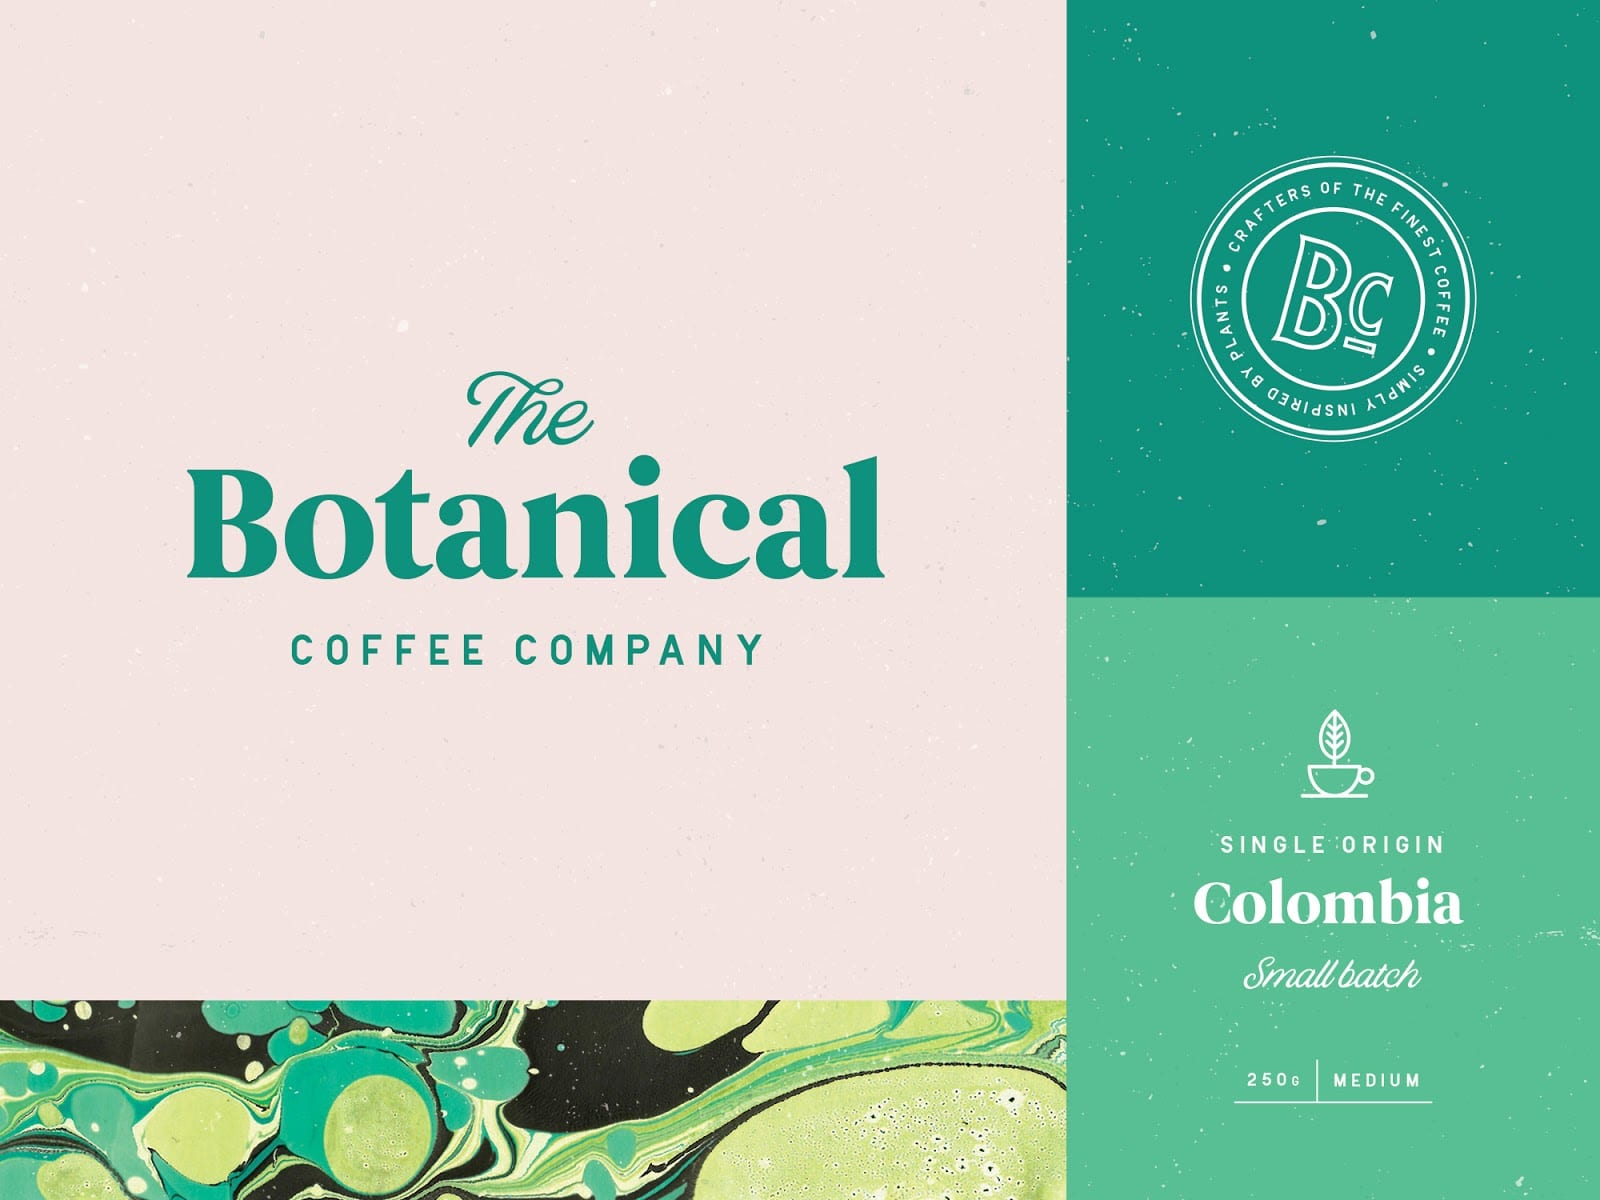 Botanical Coffee Co 01 - Ach, tie obaly – Botanical Coffee Co.